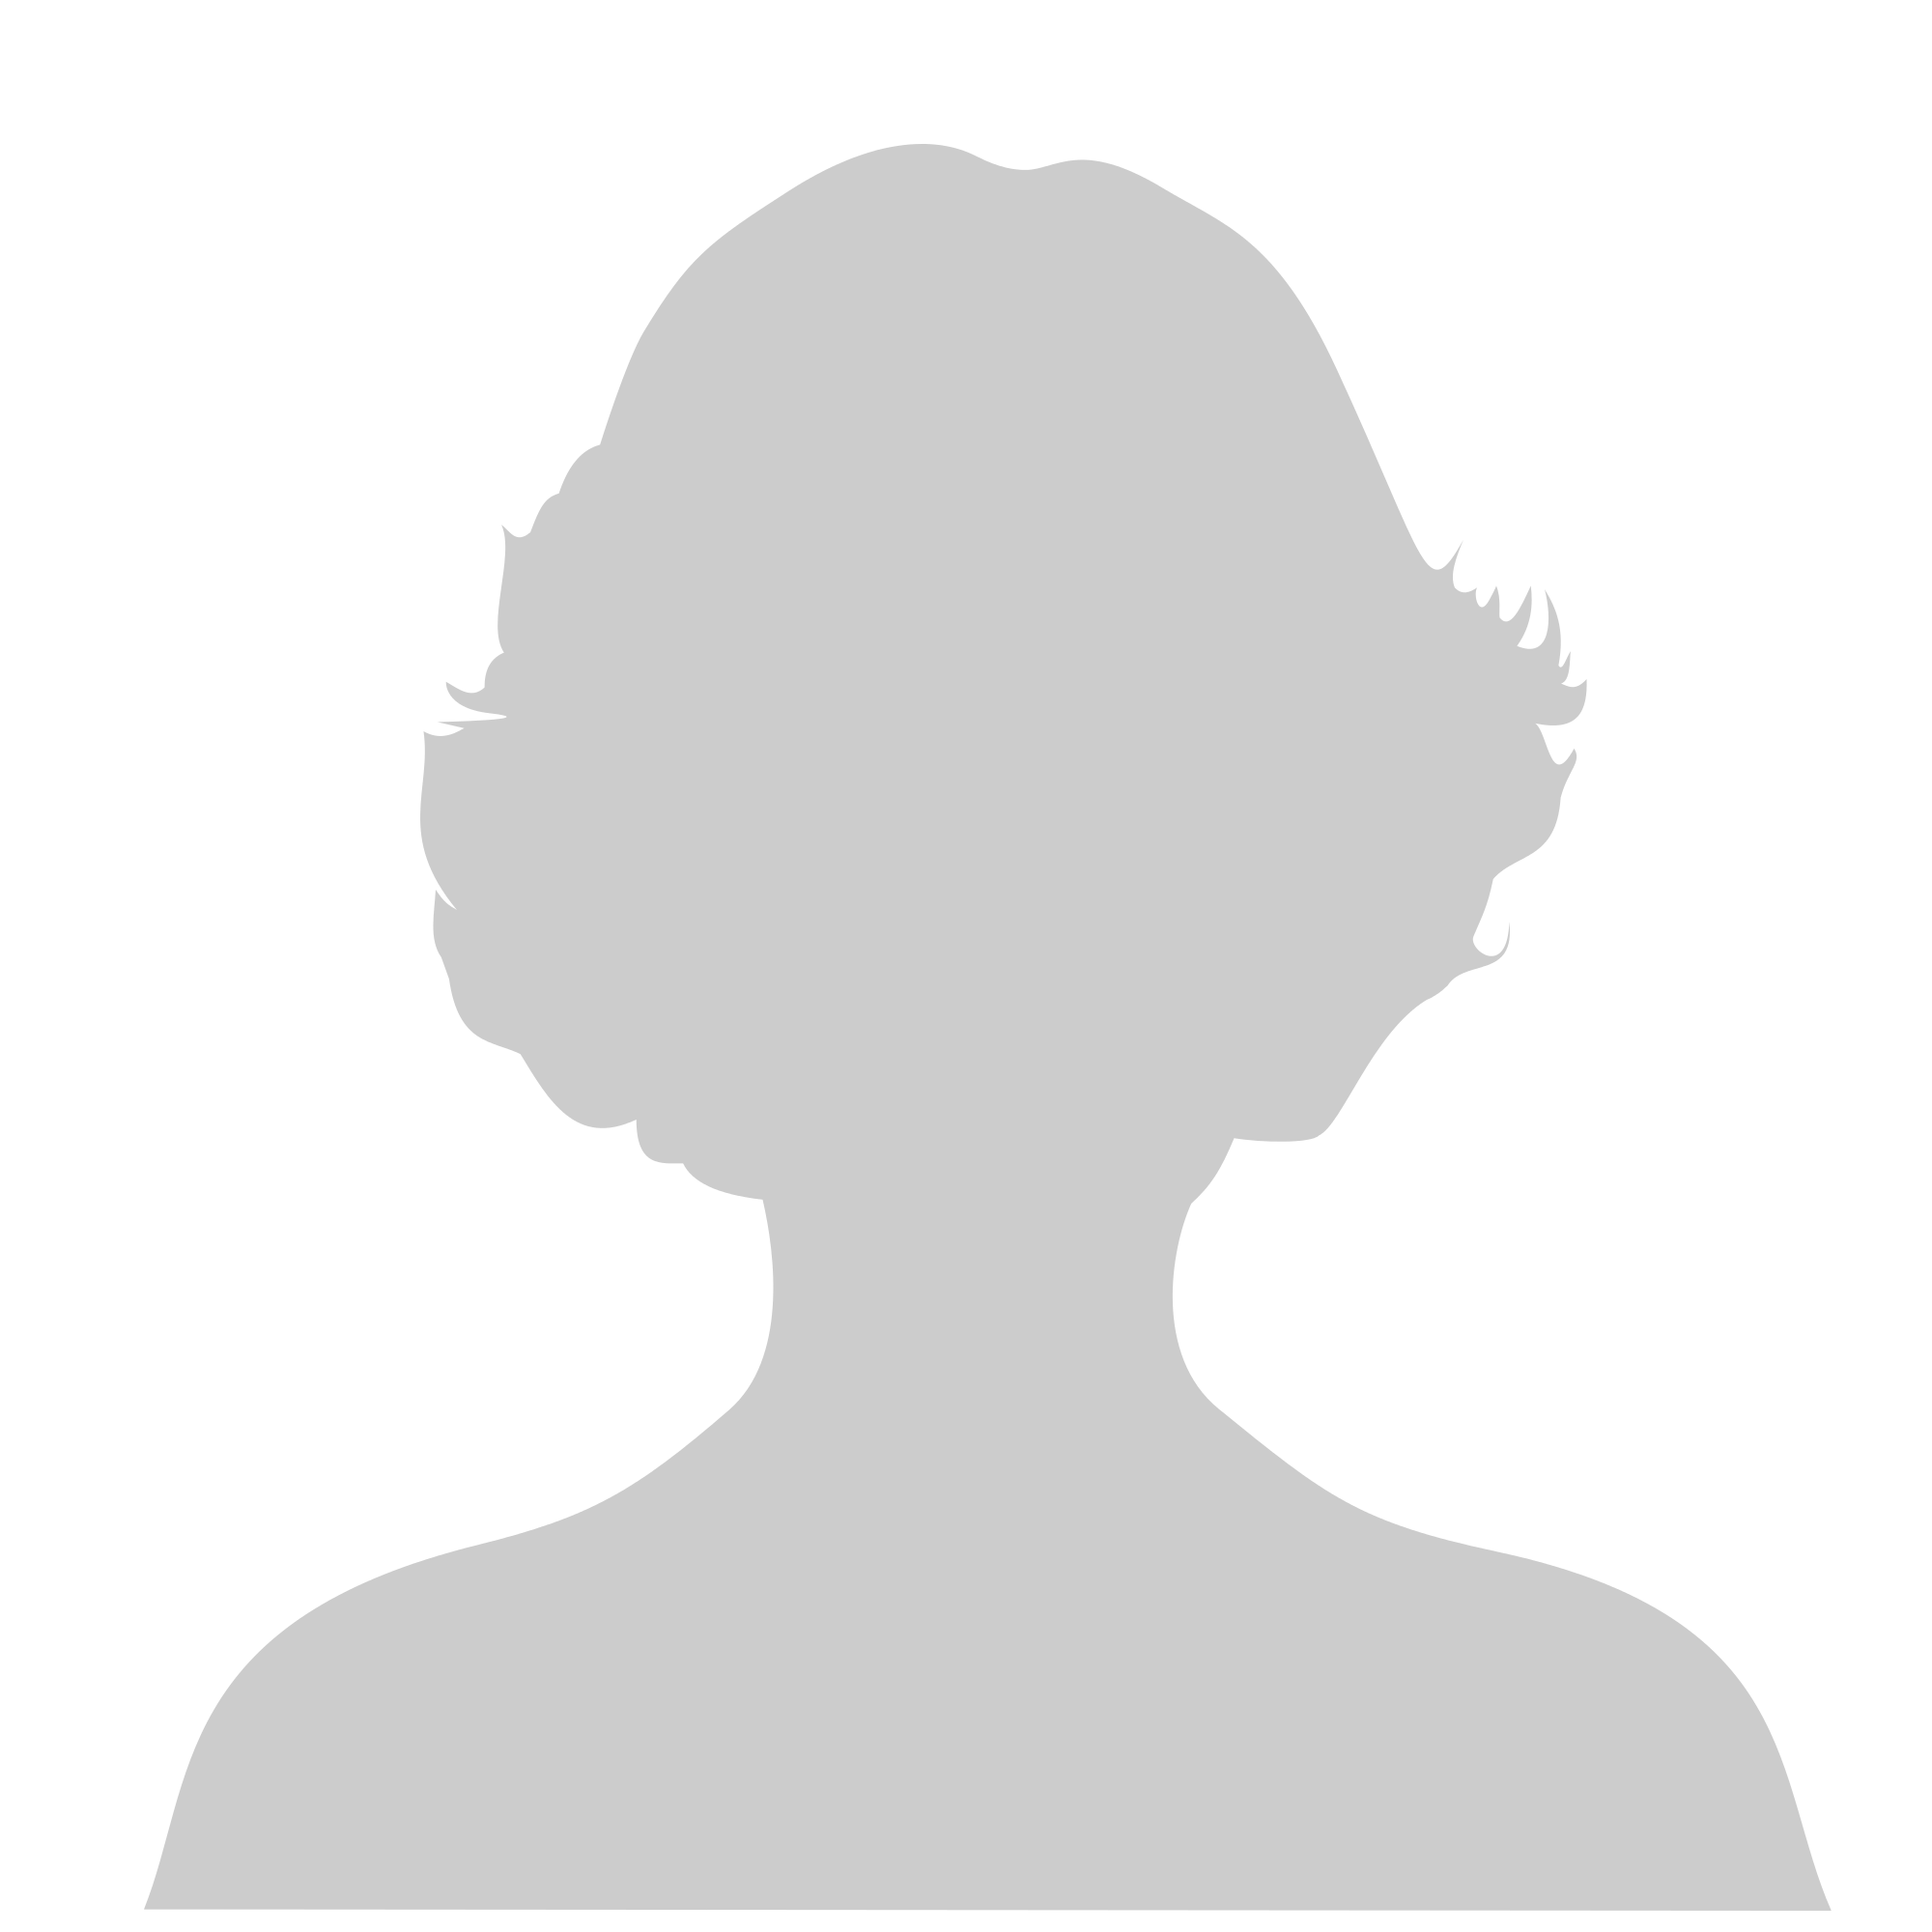 Female placeholder